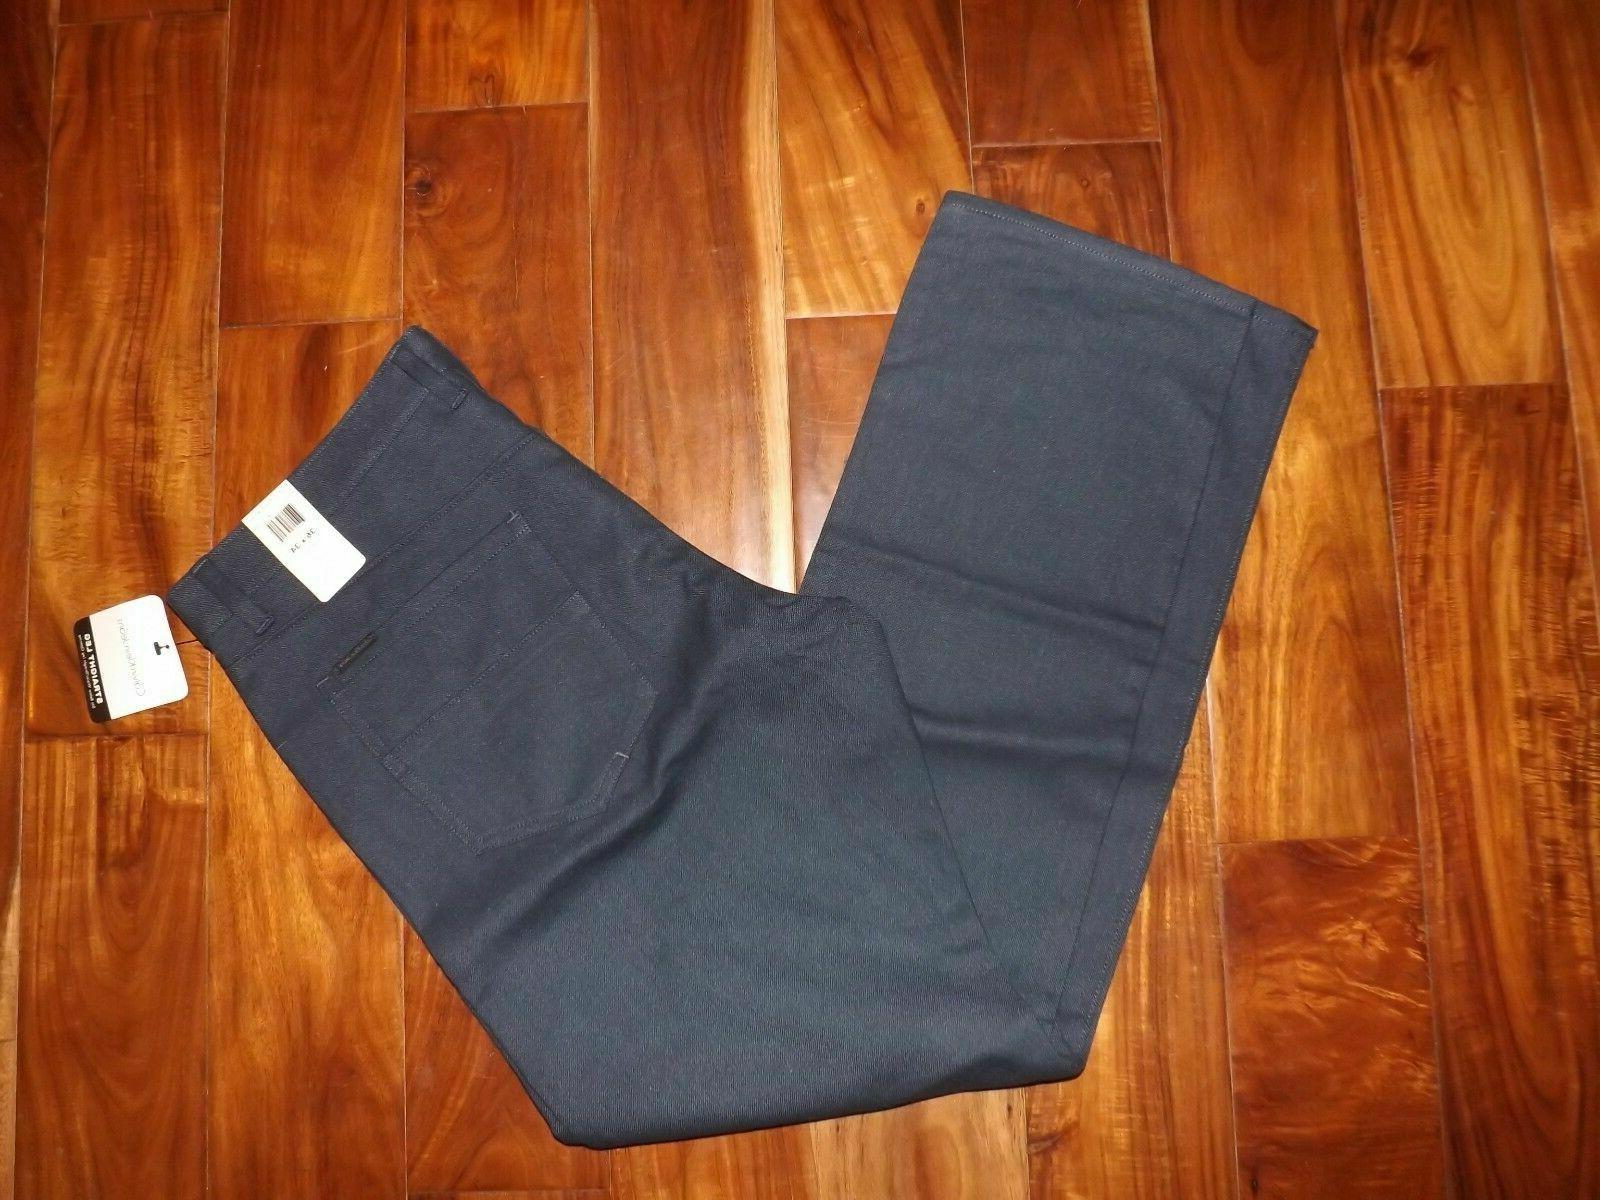 new ck jeans pants blue 36x34 straight